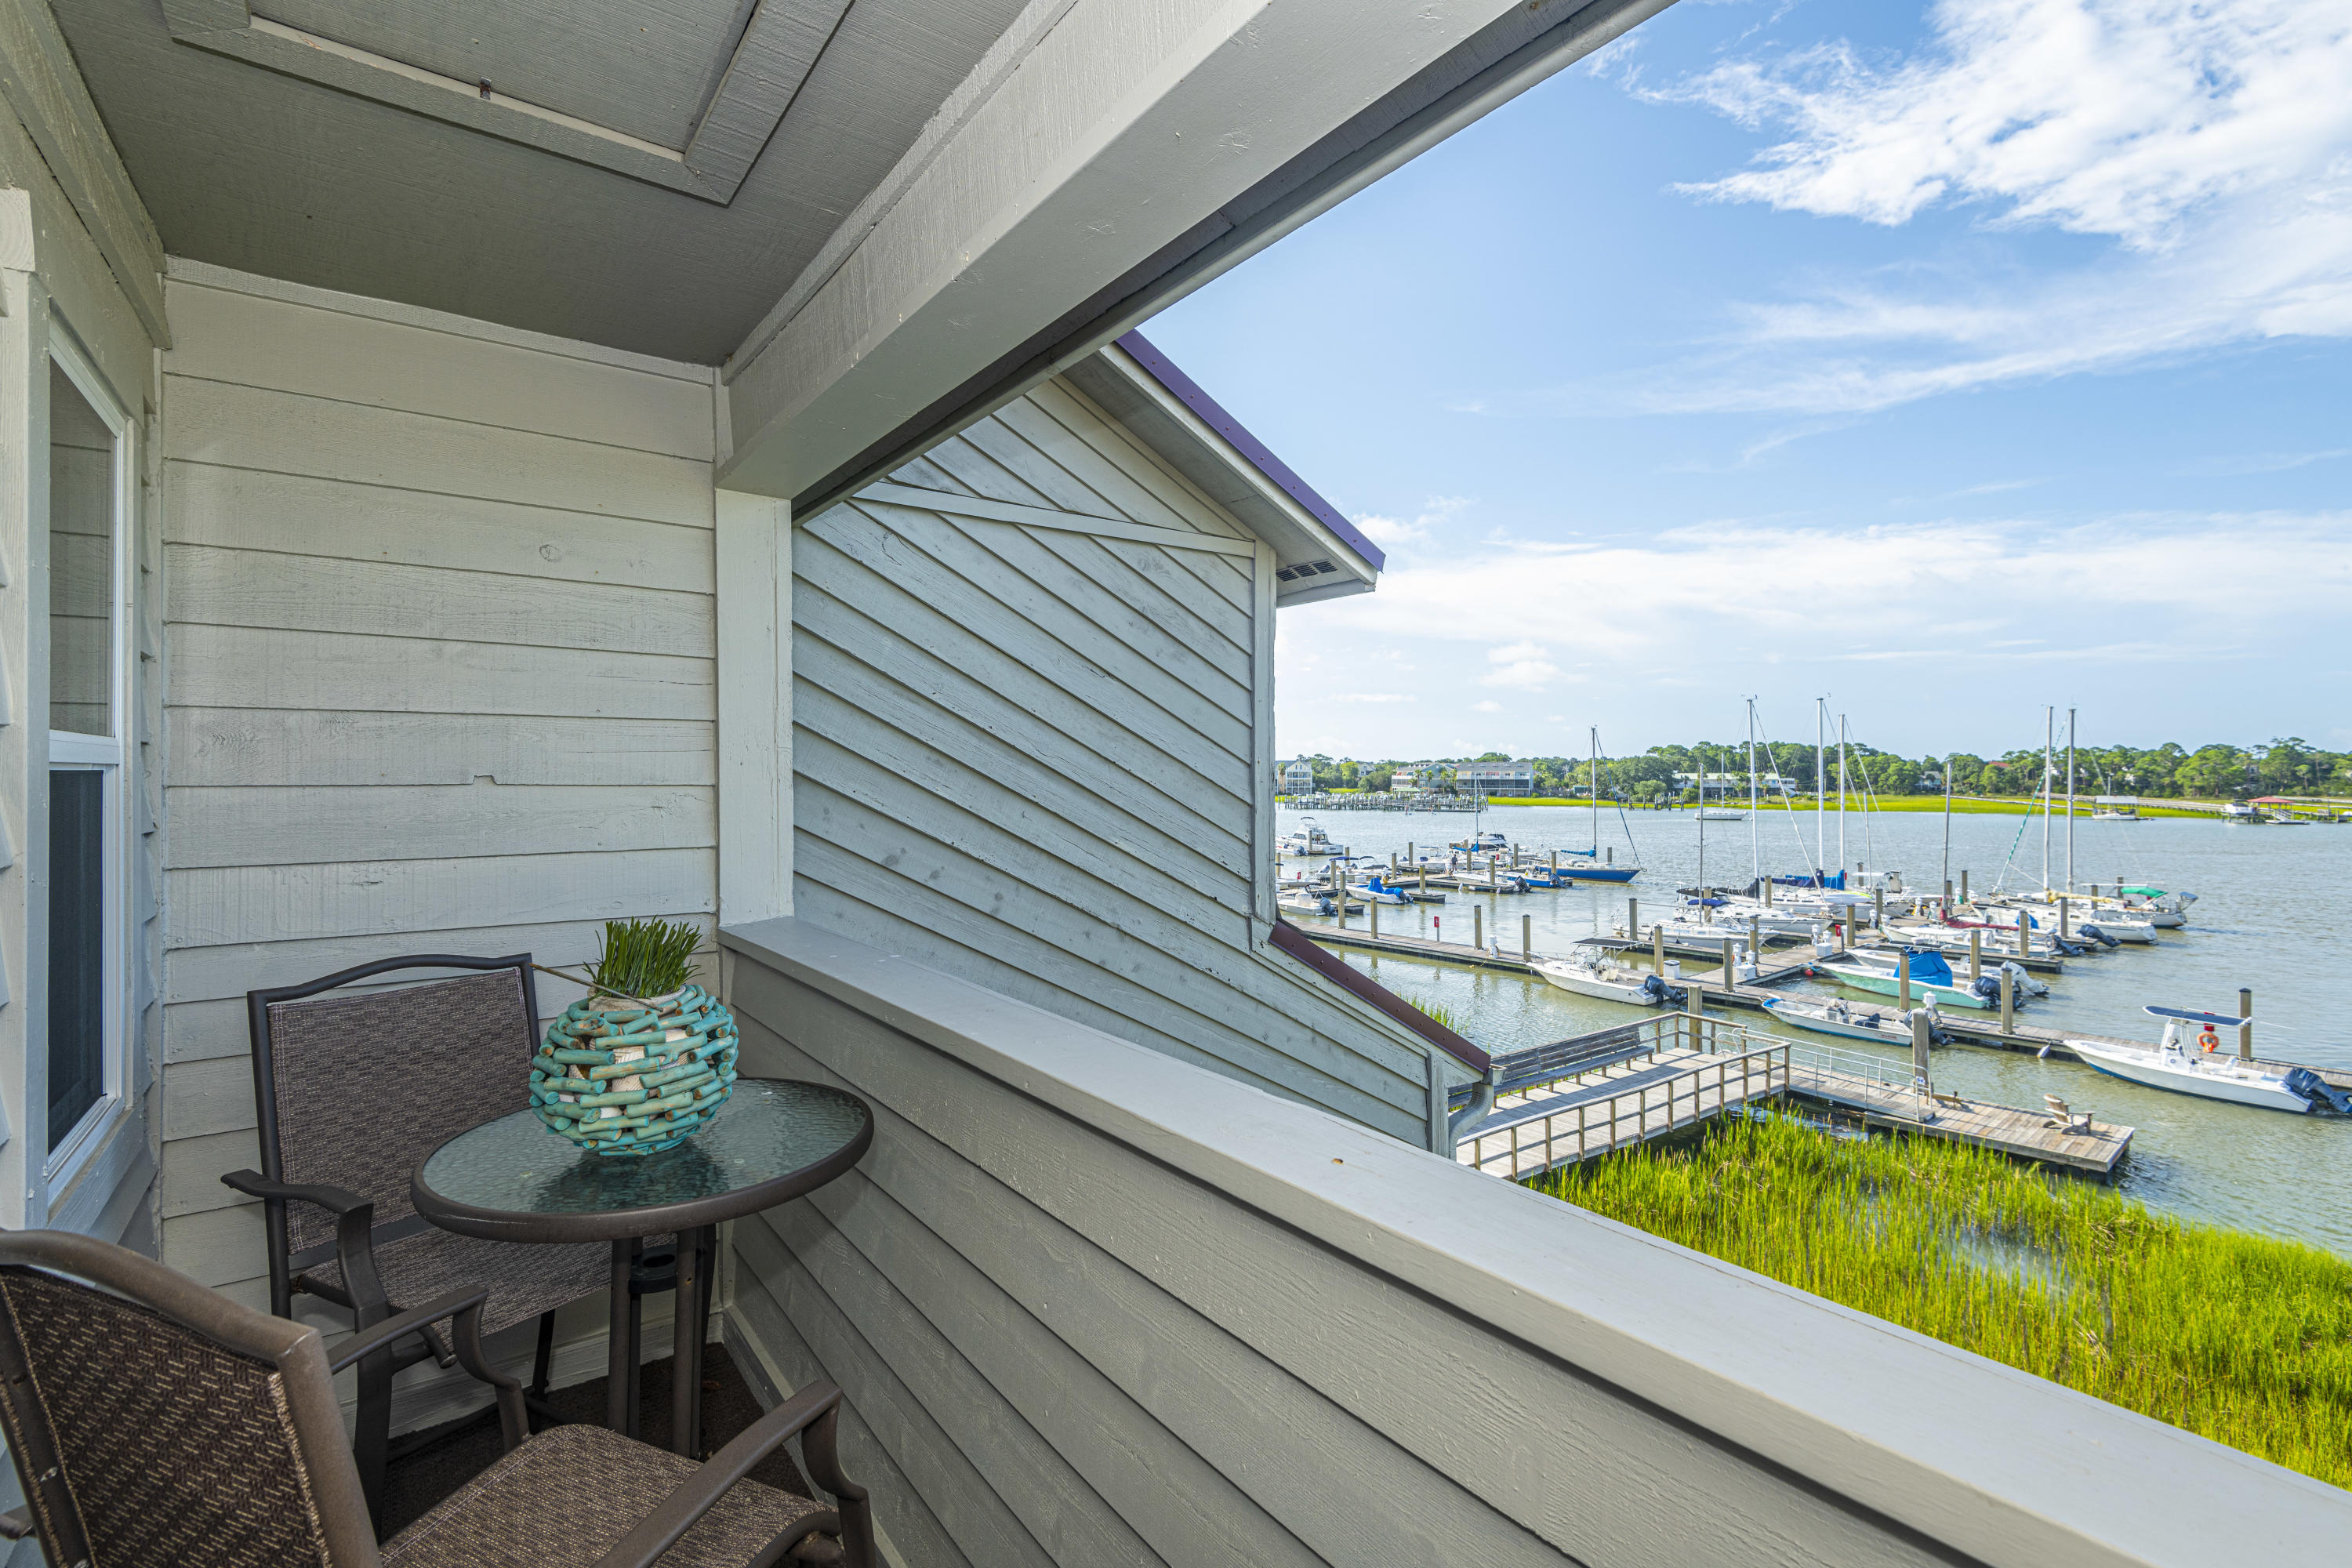 Mariners Cay Homes For Sale - 71 Mariners Cay, Folly Beach, SC - 18